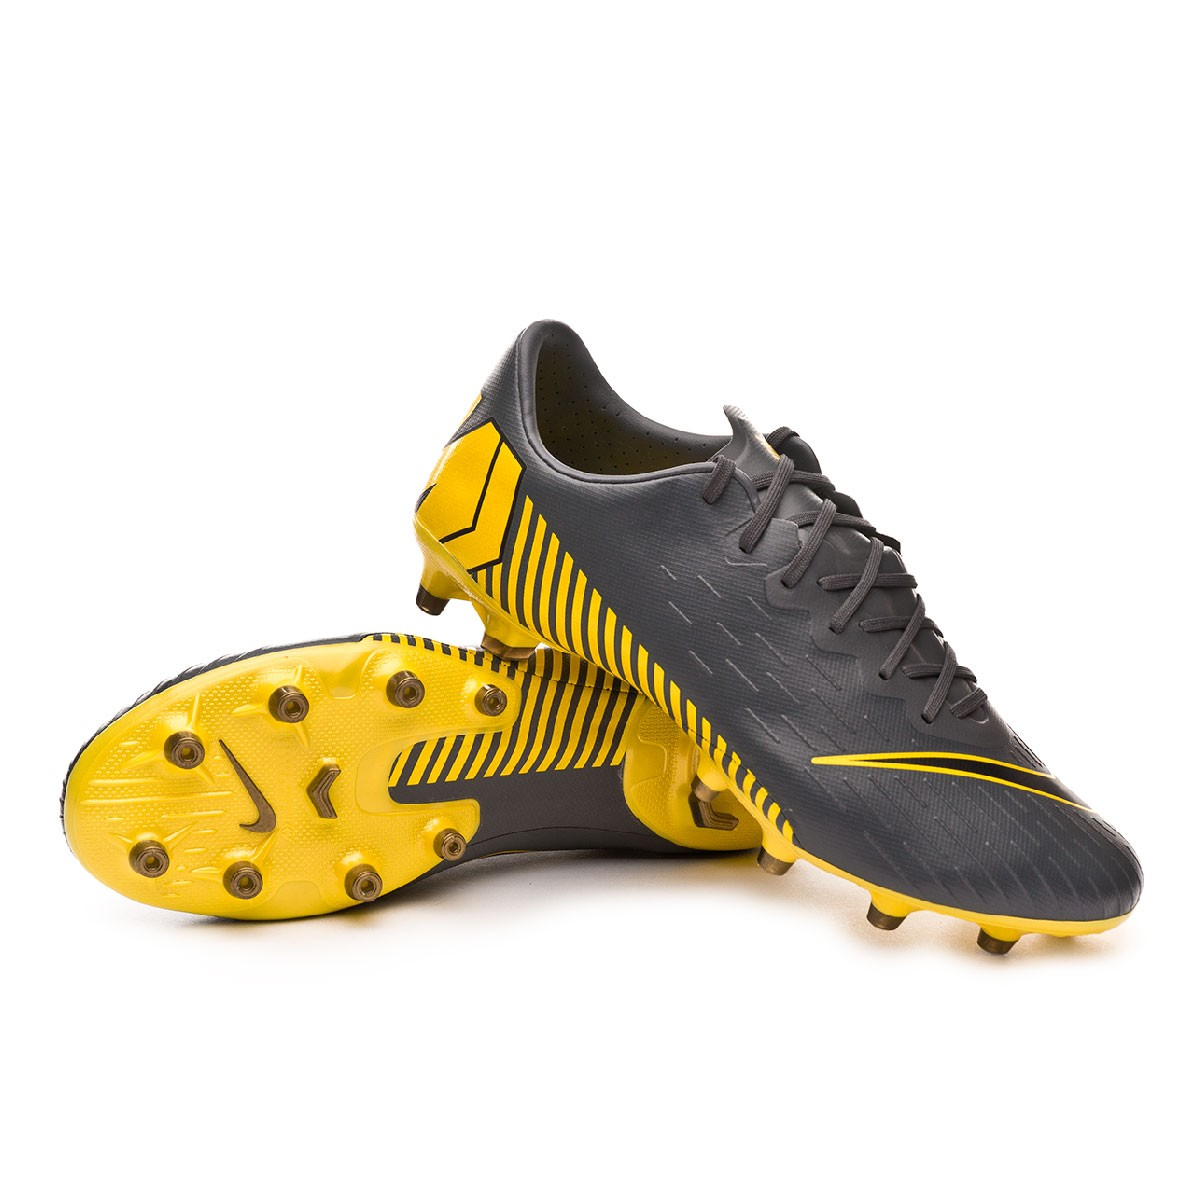 competitive price release date: really cheap Nike Mercurial Vapor XII Pro AG-Pro Football Boots